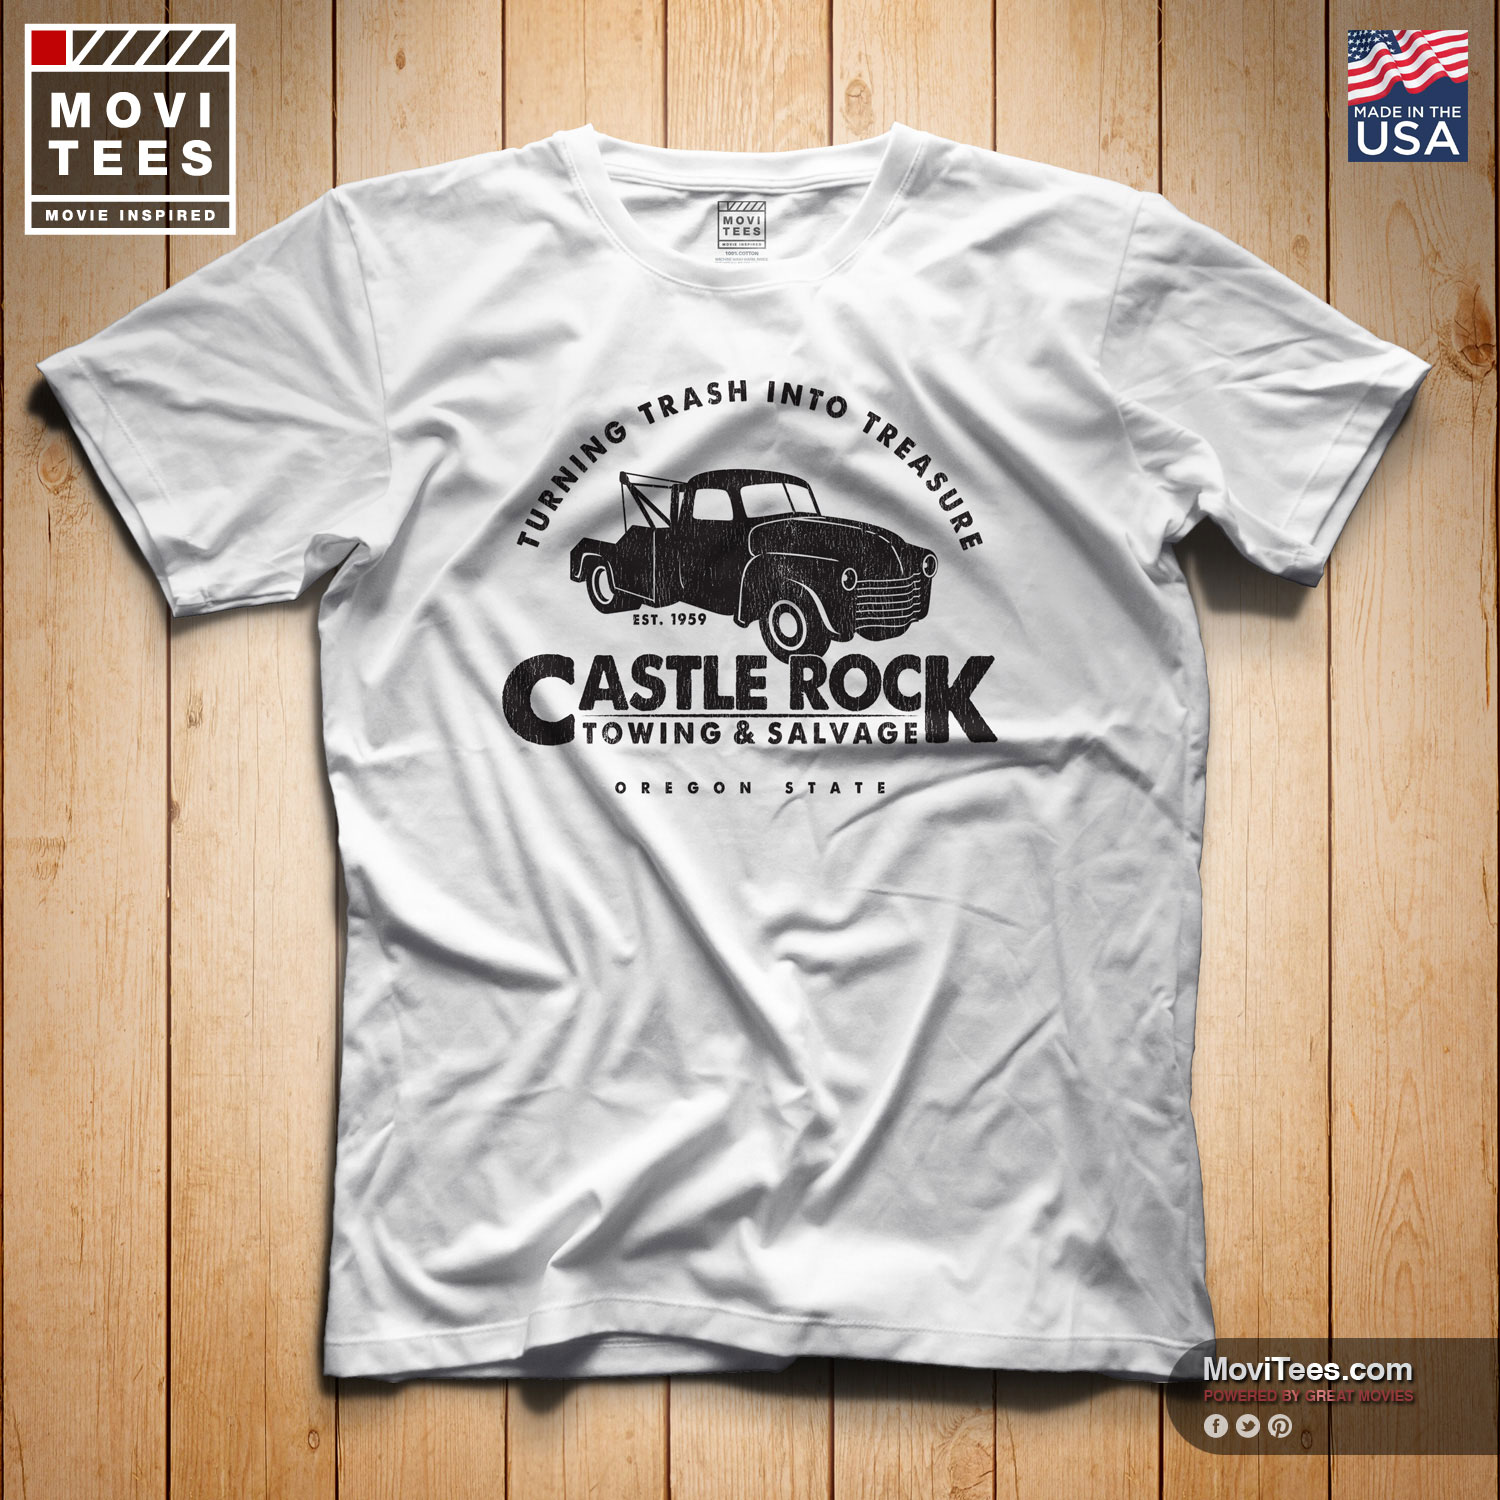 Castle Rock Towing & Salvage T-Shirt